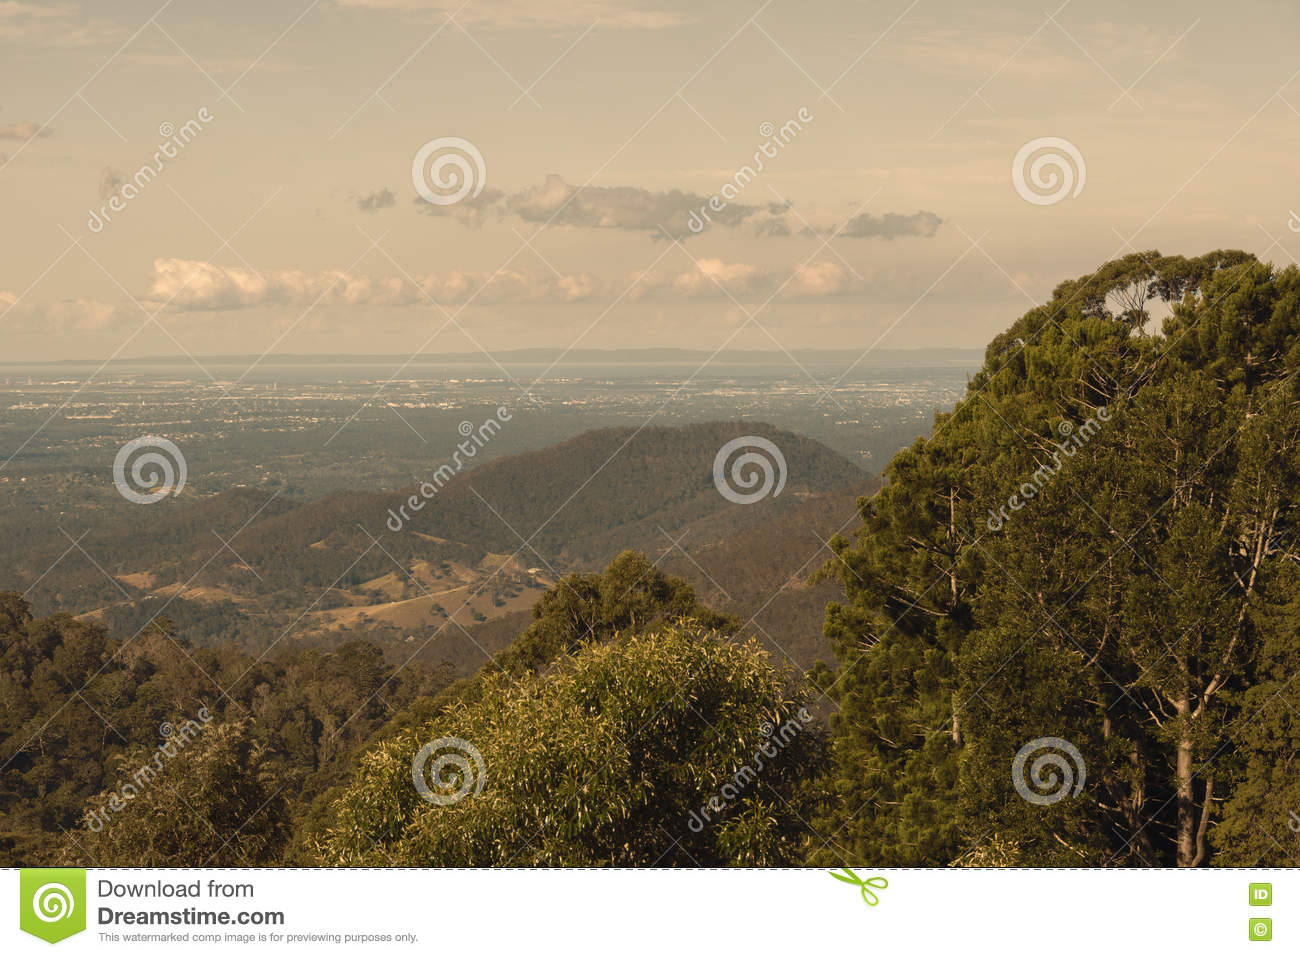 View from Mount Glorious near Brisbane, Queensland.